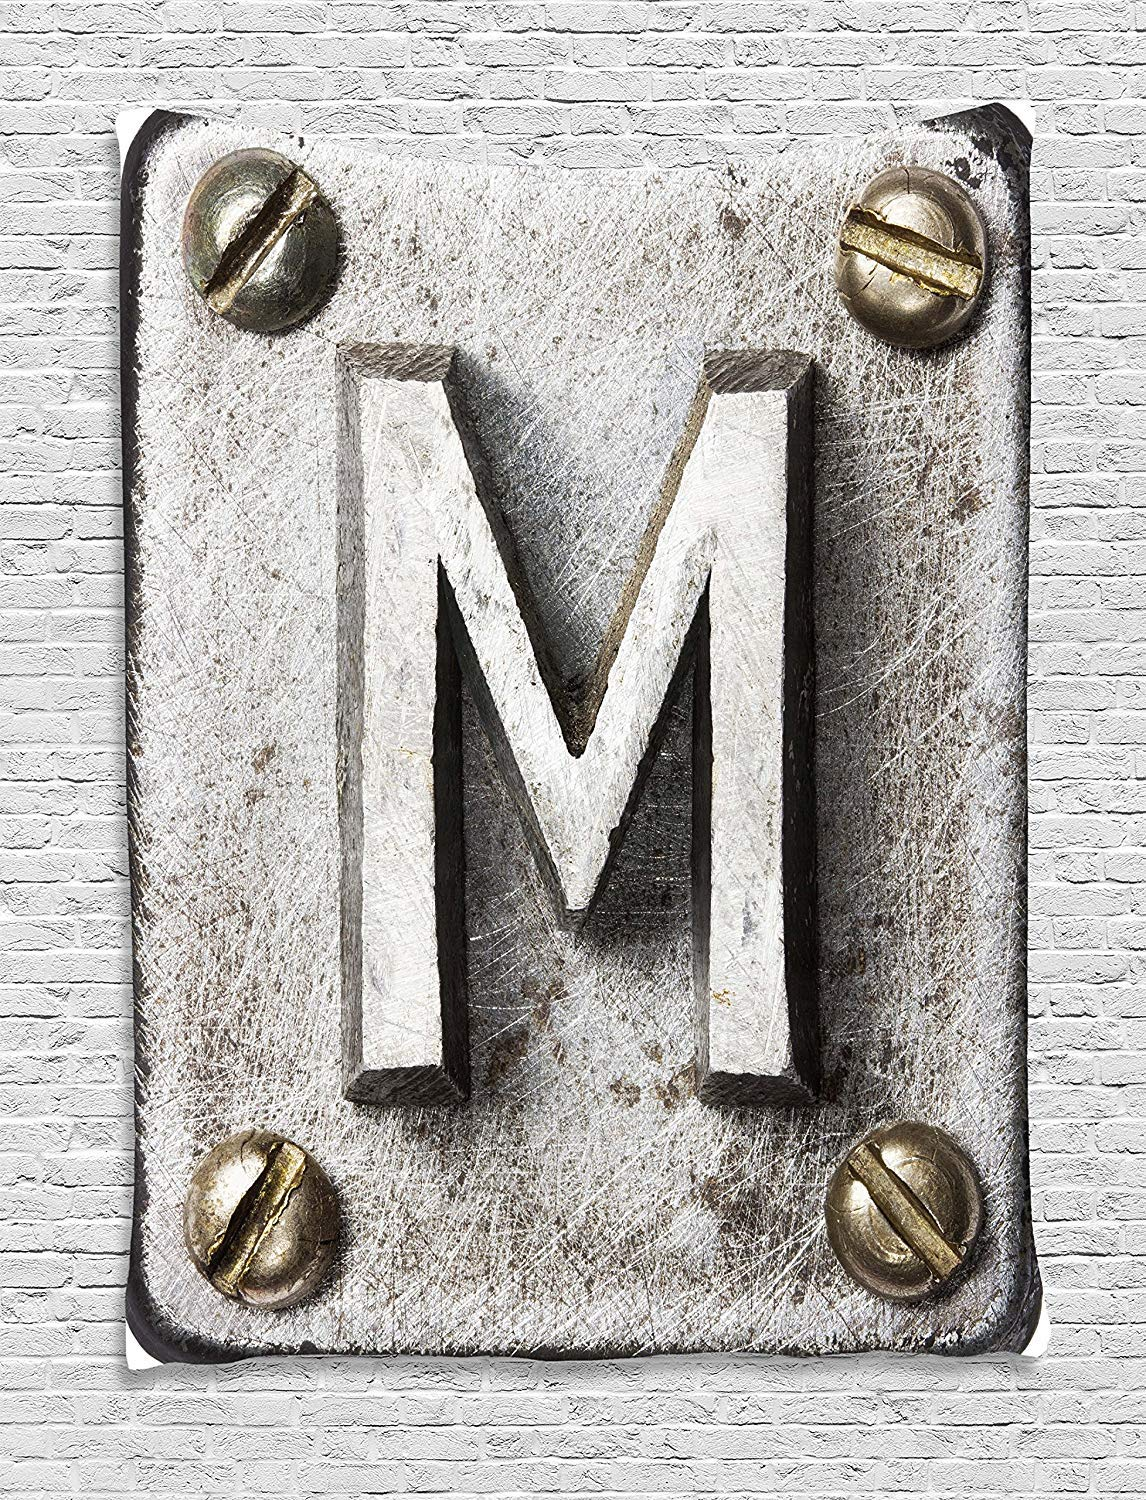 THndjsh Letter M Tapestry, Zinc Iron Steel Alphabet Typeset with Grunge Scratched Texture Industrial Image, Wall Hanging for Bedroom Living Room Dorm, 60 W X 80 L Inches, Silver Gold